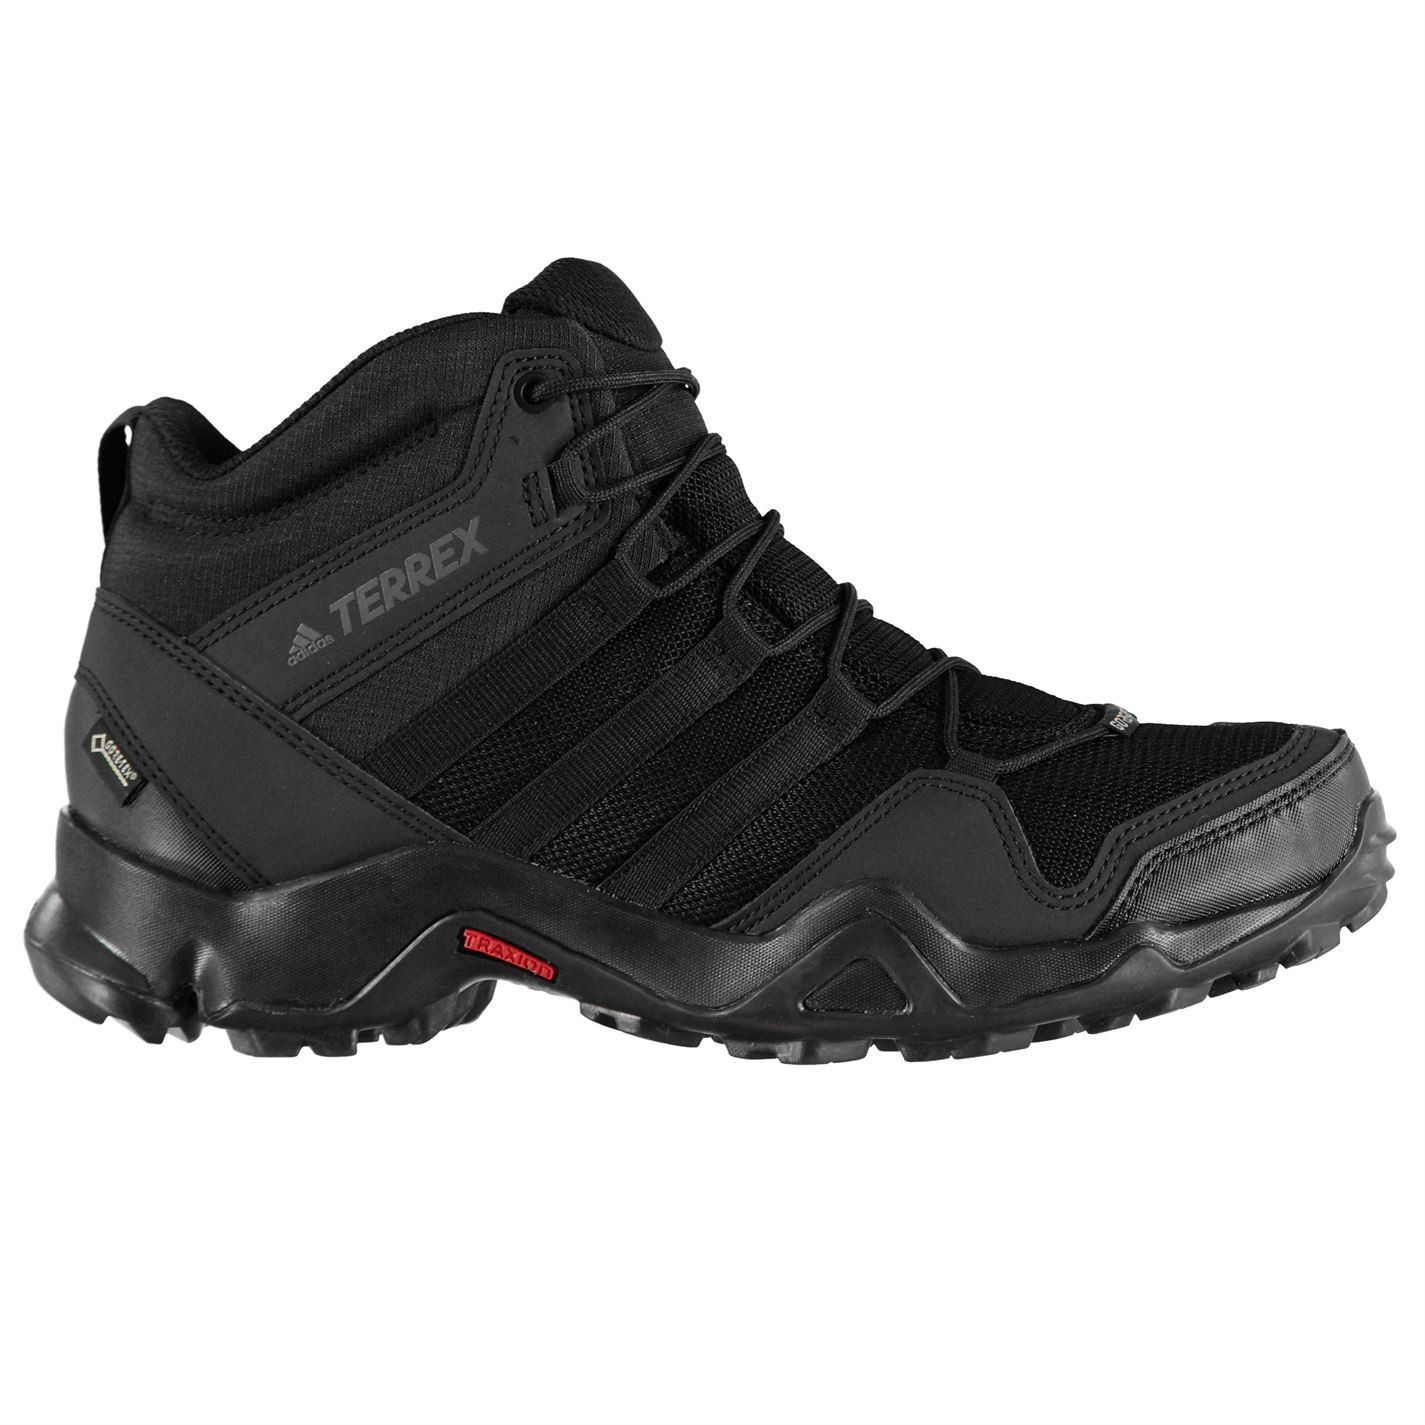 adidas Outdoor : Hiking Shoes, Walking Boots, Running Shoes